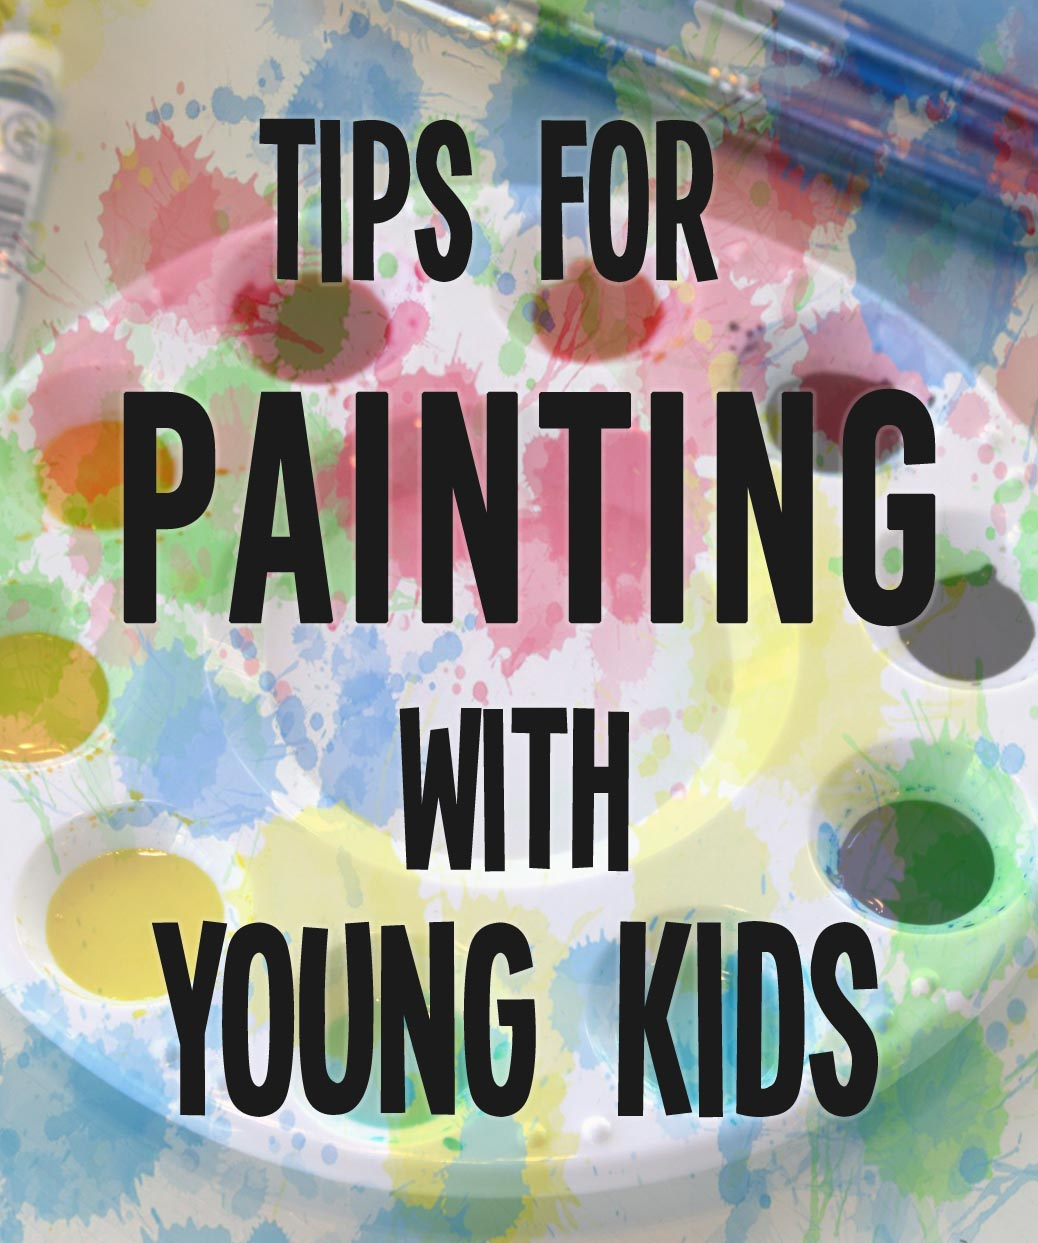 tips for painting with young kids